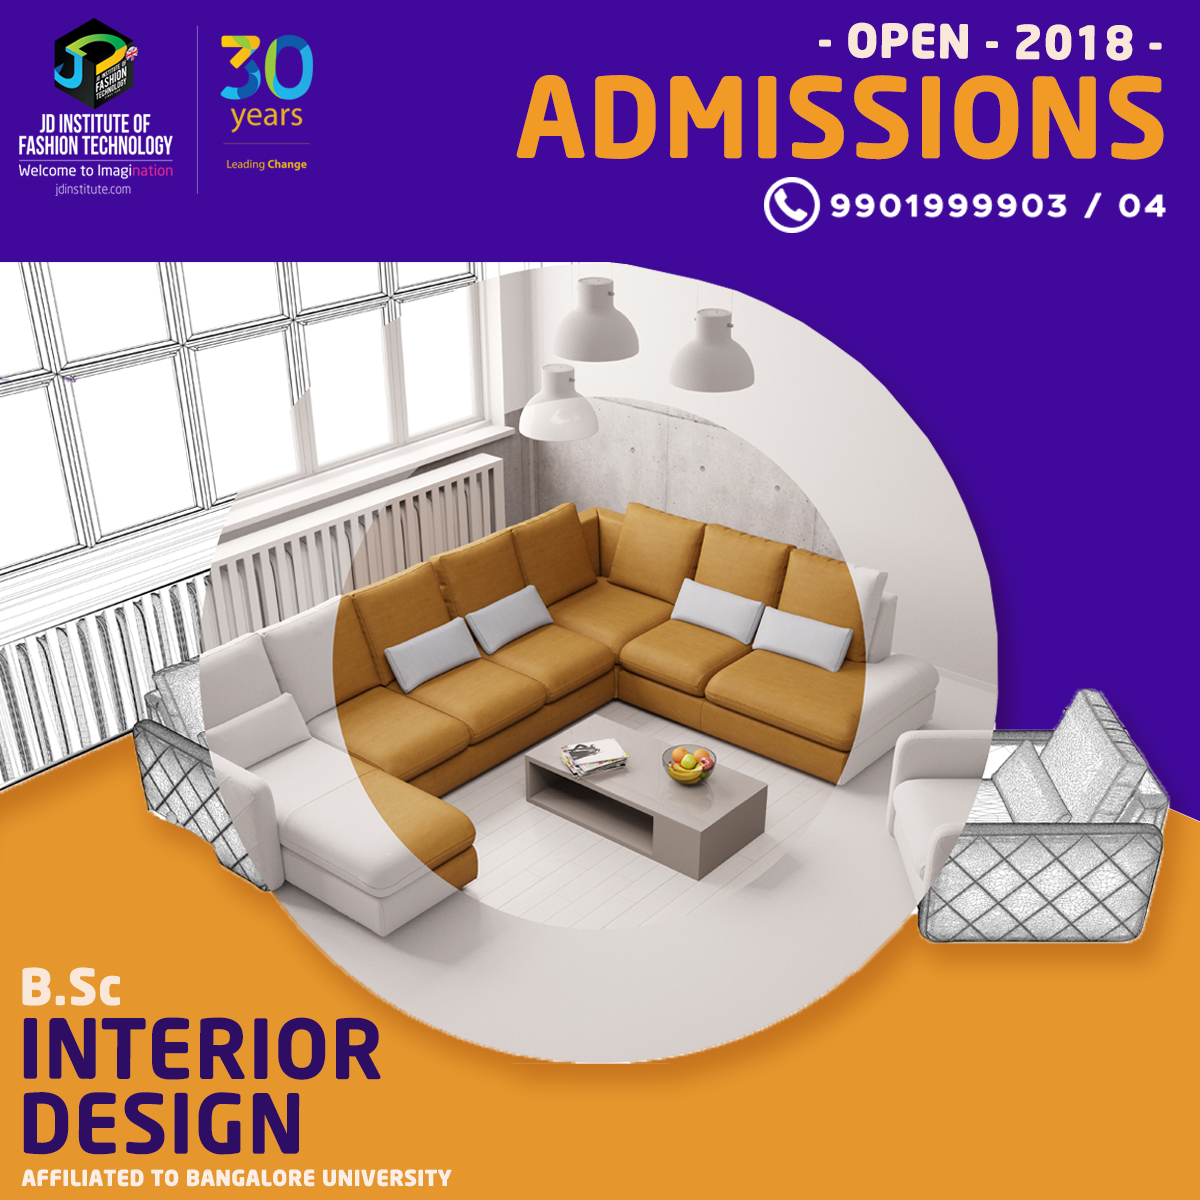 Make An Impression With Great Space Designs Take Up A Professional Degree Course In Interior Design Call Our C Interior Design Courses Interior Design Design